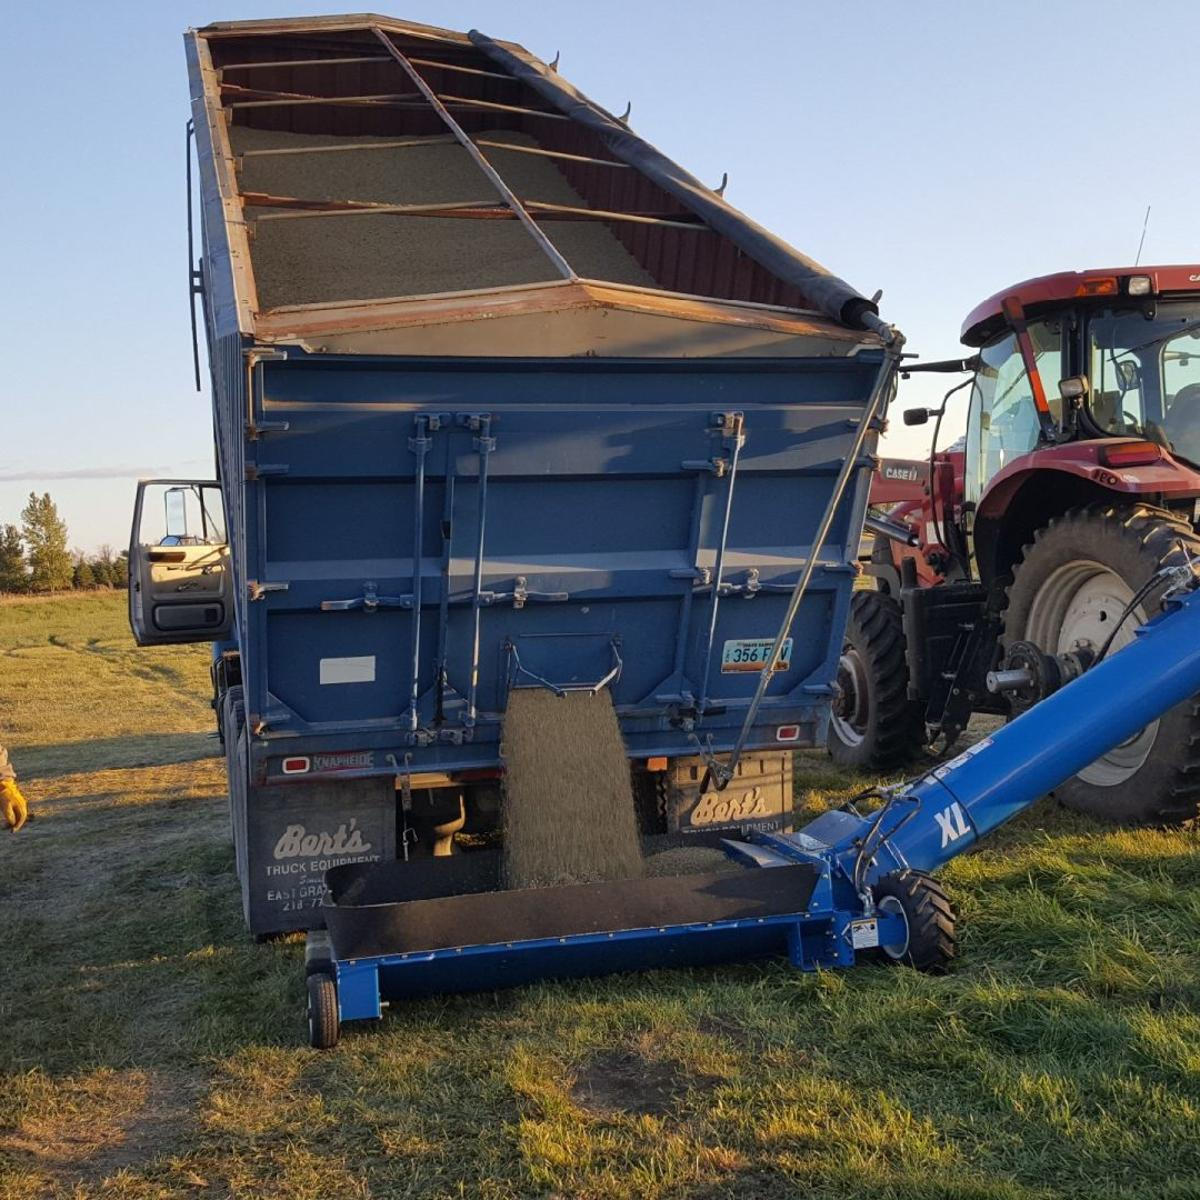 State farmers showing strong interest in growing industrial